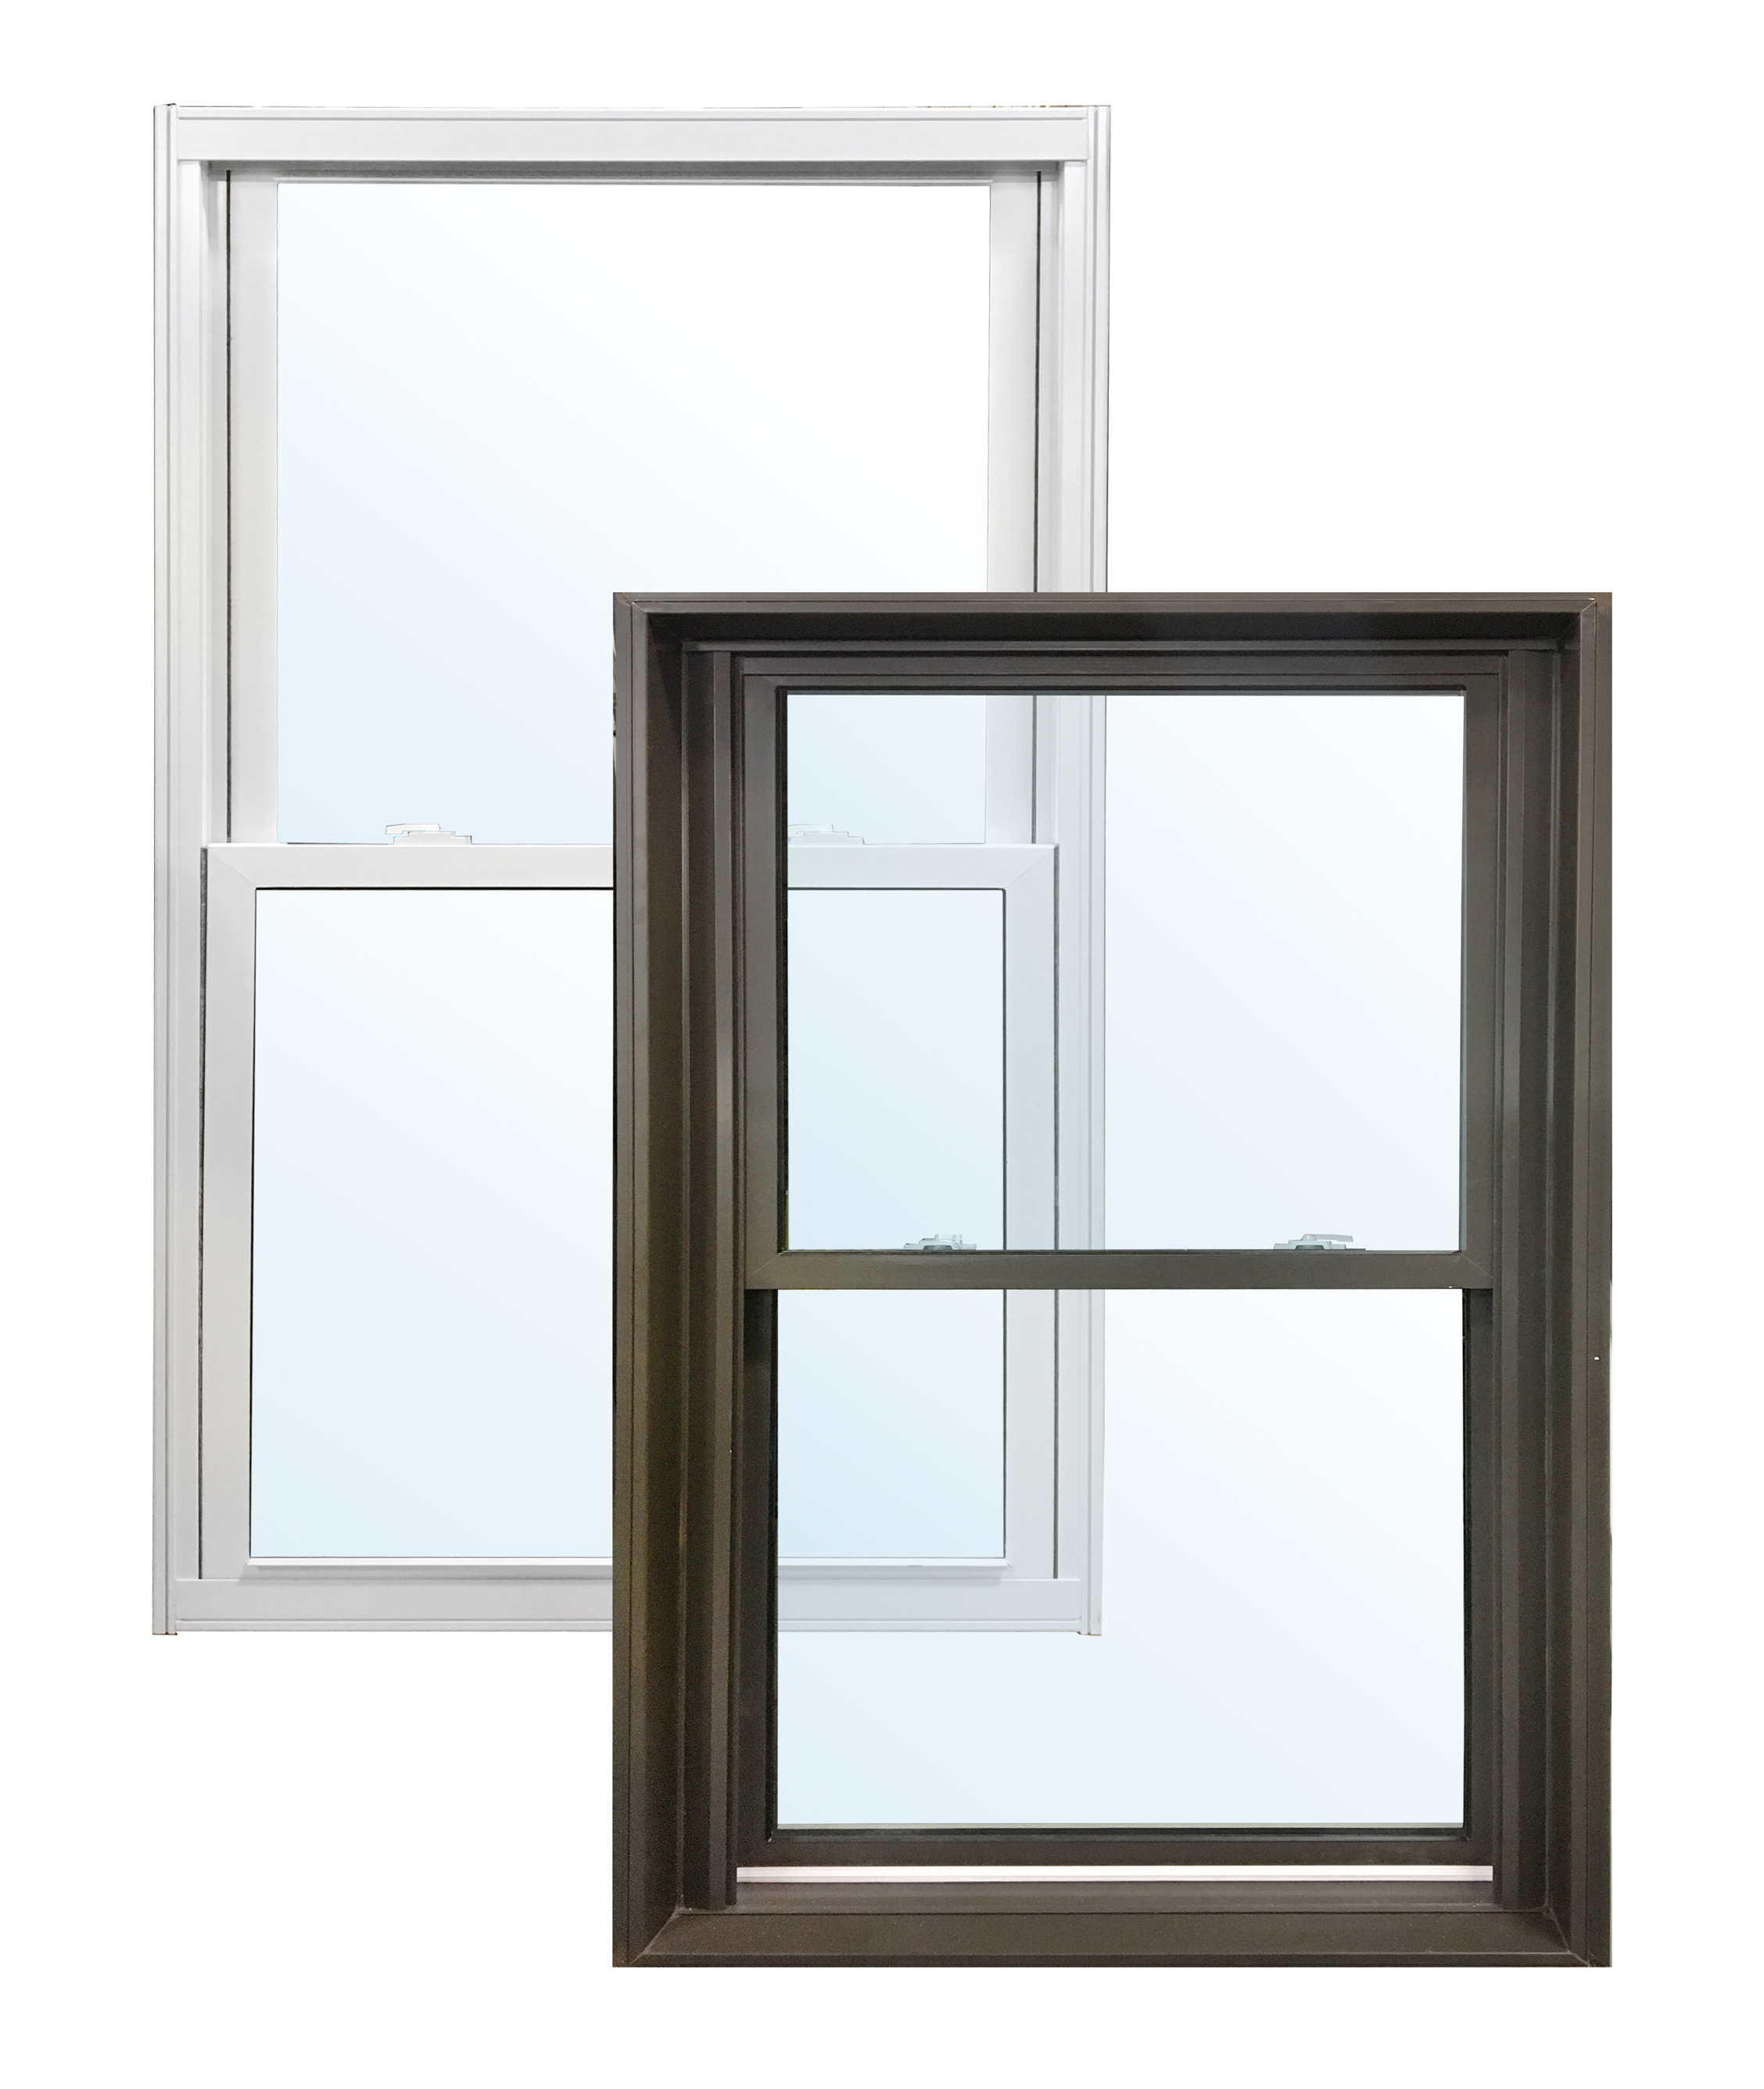 400 Series Double Hung Tilt Window Fibertec Fiberglass